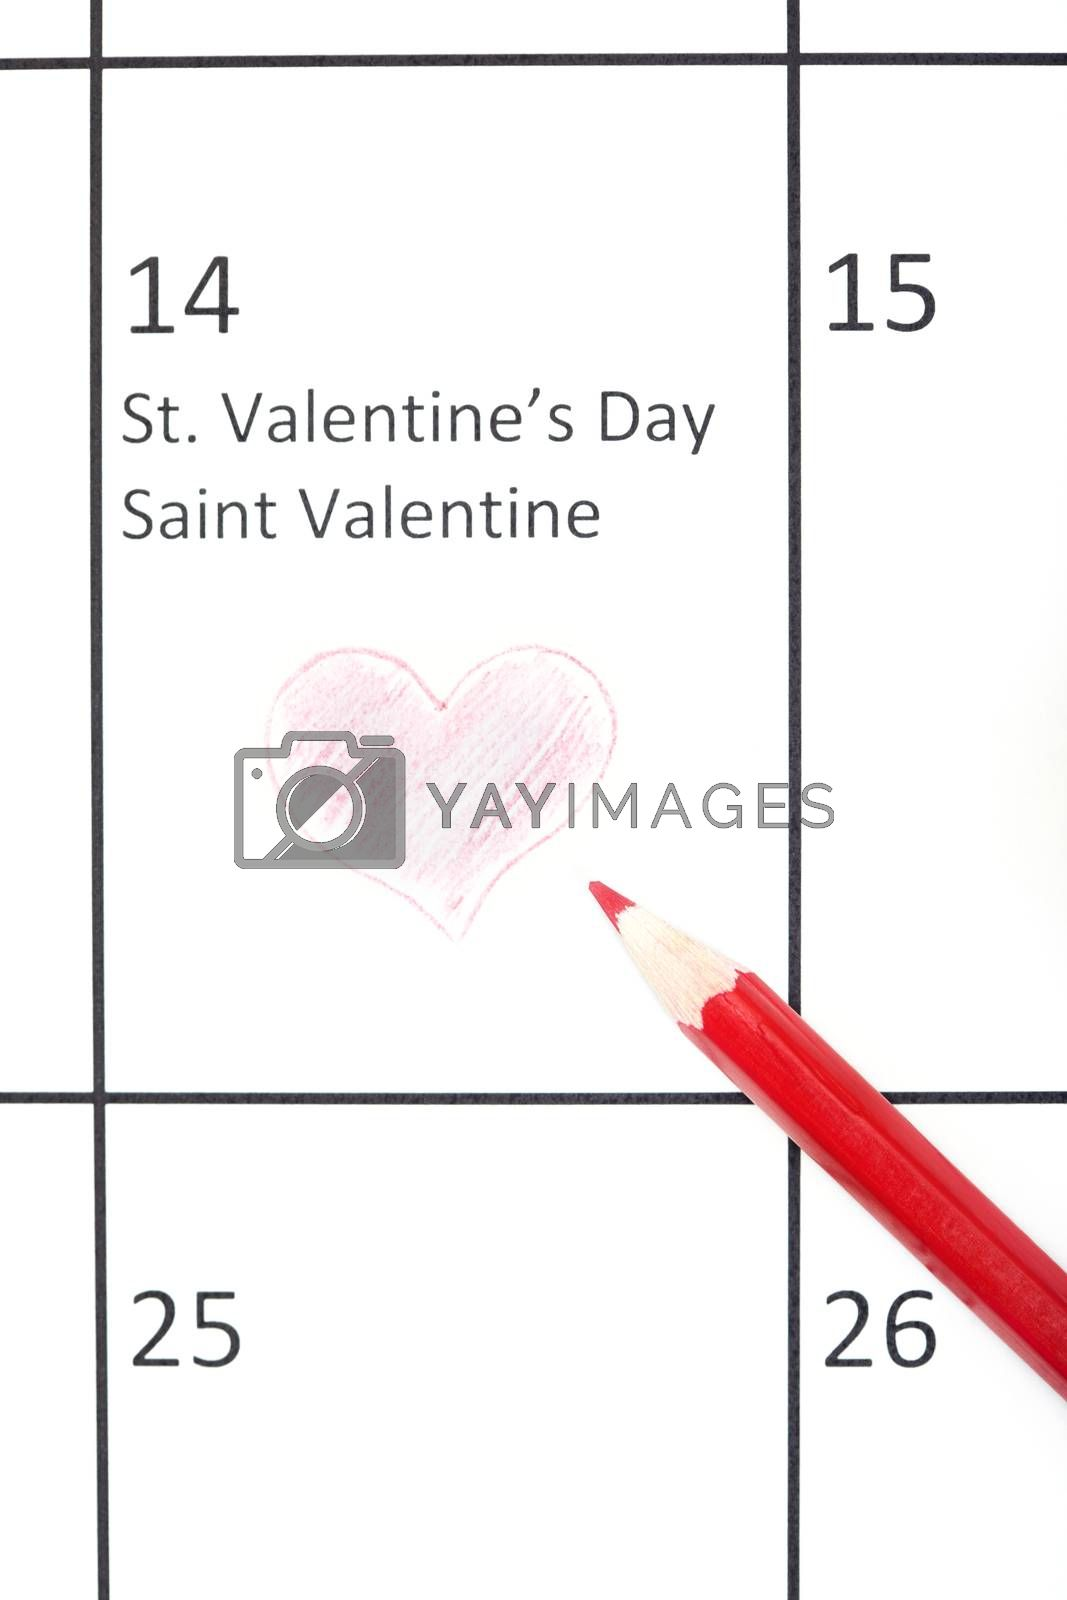 Red pencil on a calendar with Saint Valentine Day